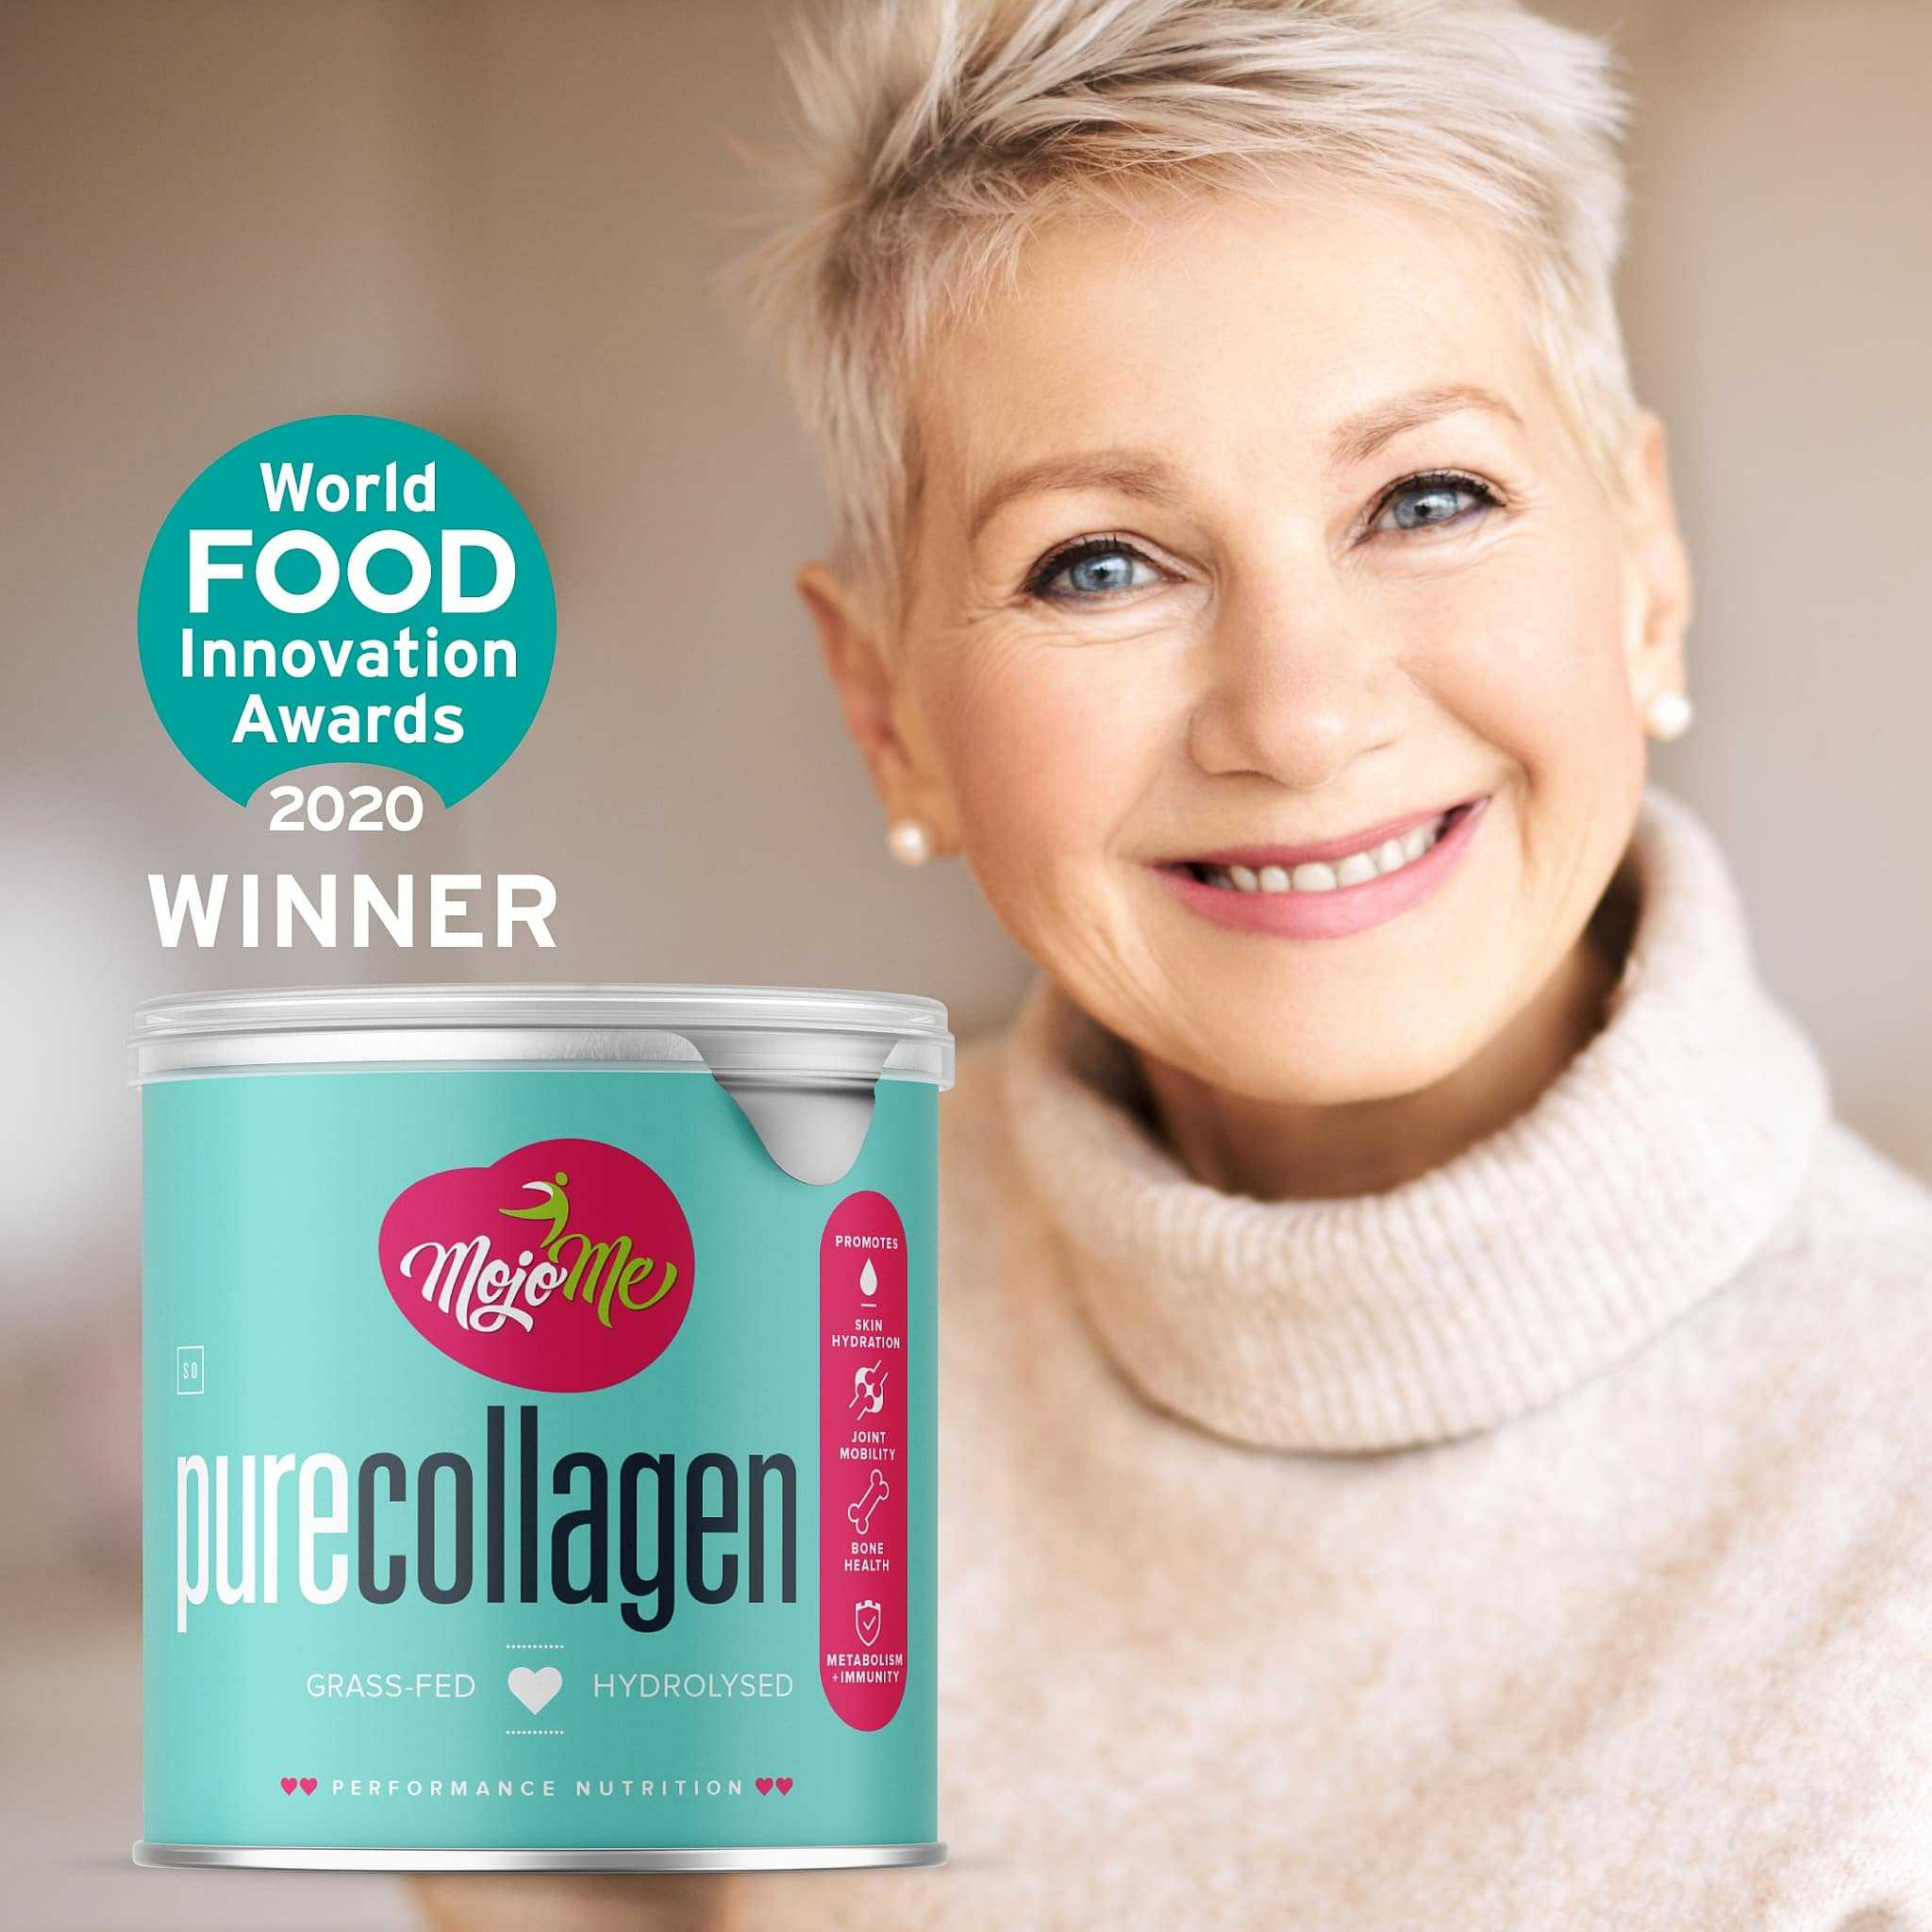 MojoMe Pure Collagen